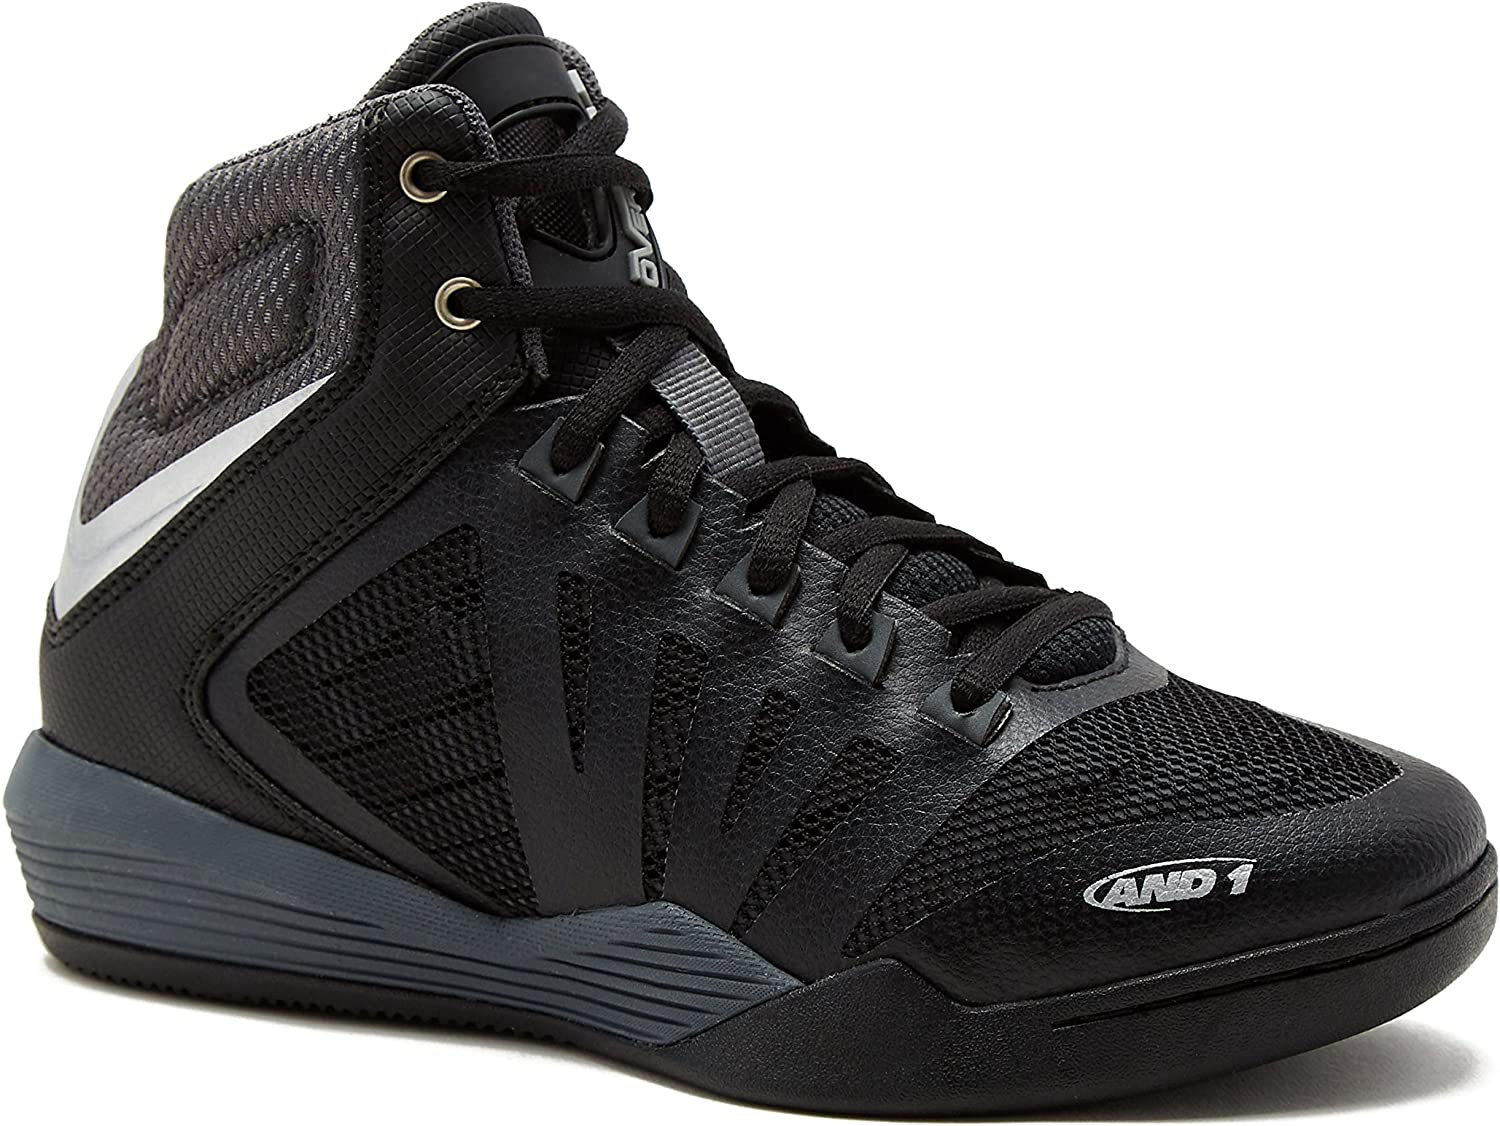 AND1 Kids Overdrive Lace Directly managed store Sneaker Up Basketball Jacksonville Mall Shoe